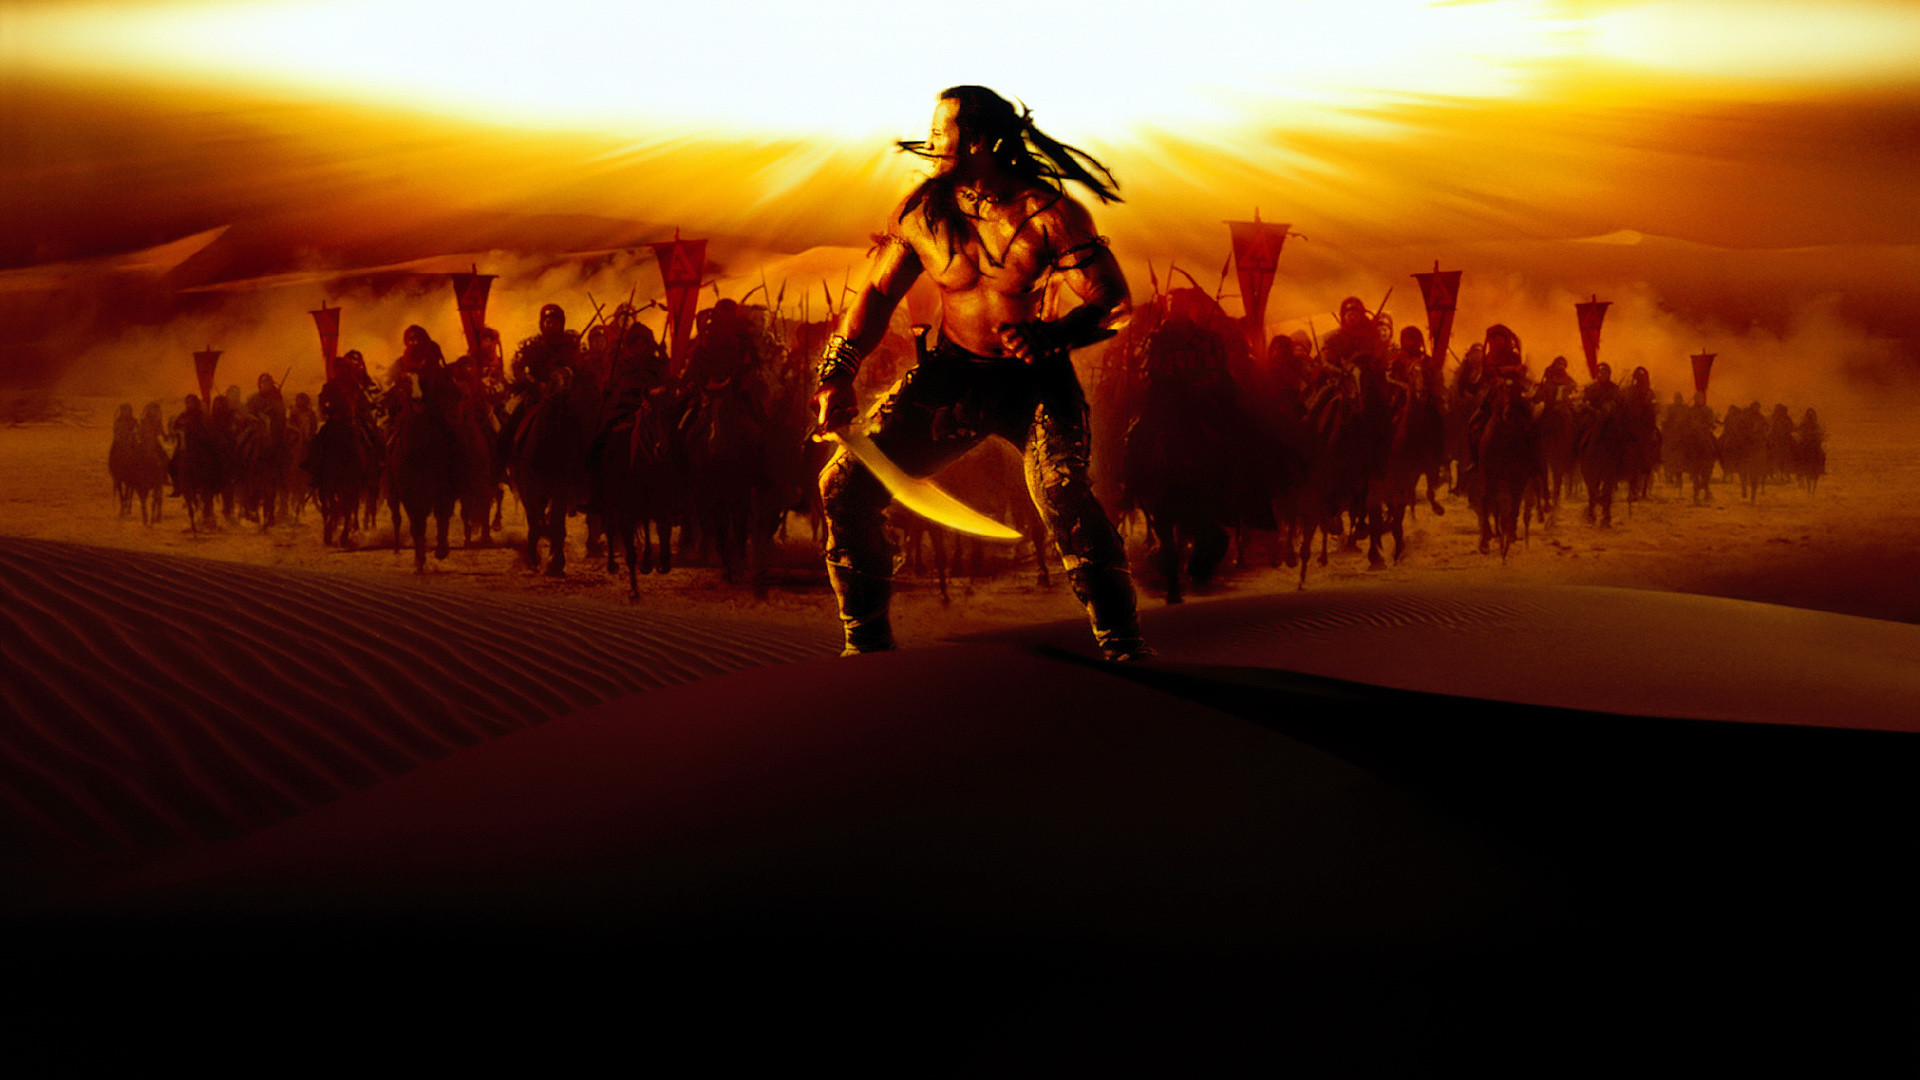 Res: 1920x1080, 2 The Scorpion King 3: Battle For Redemption HD Wallpapers .